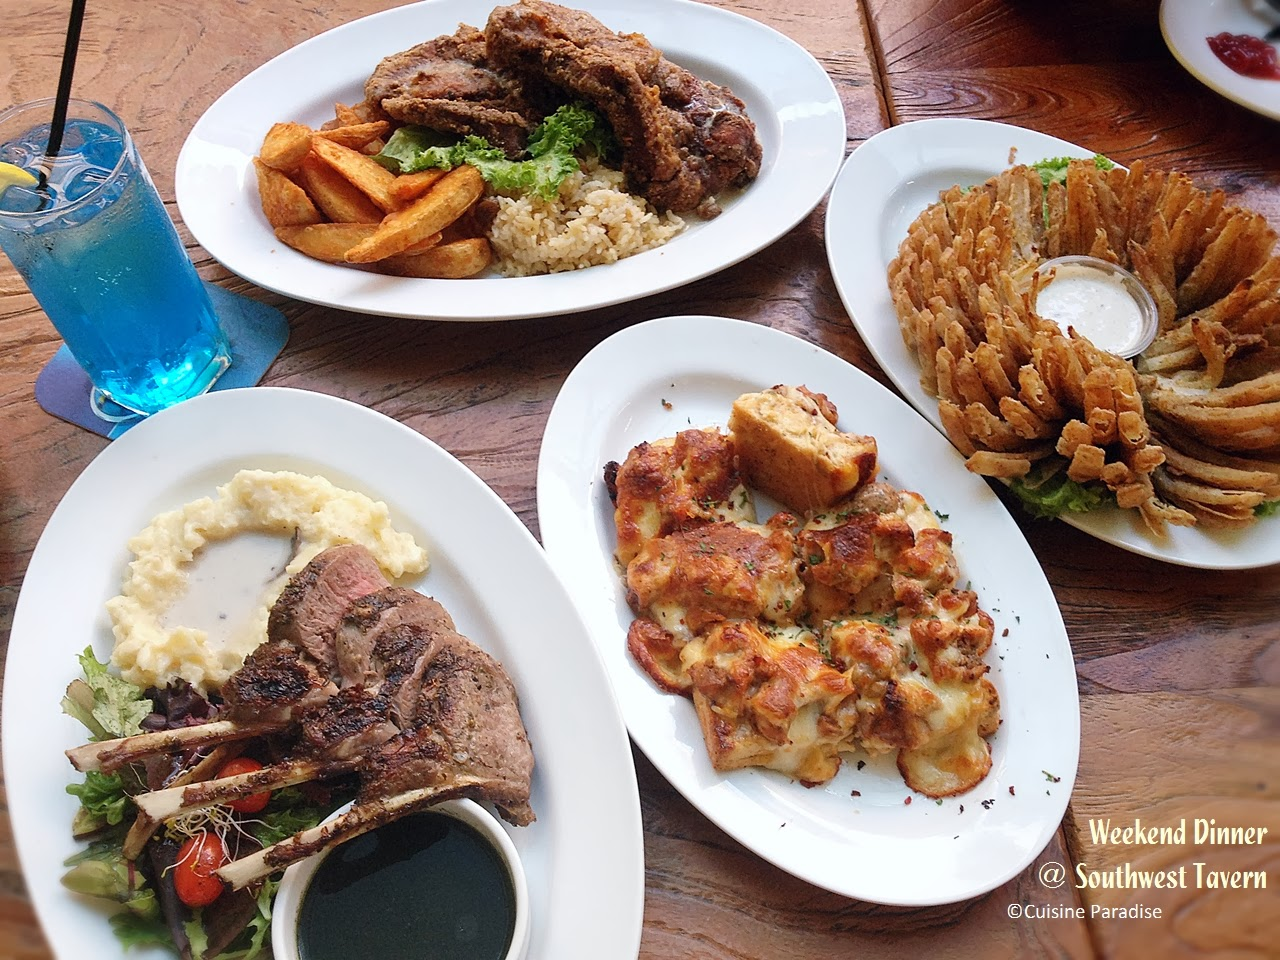 Cuisine paradise singapore food blog recipes reviews and travel weekend dinner southwest tavern tradehub 21 forumfinder Image collections